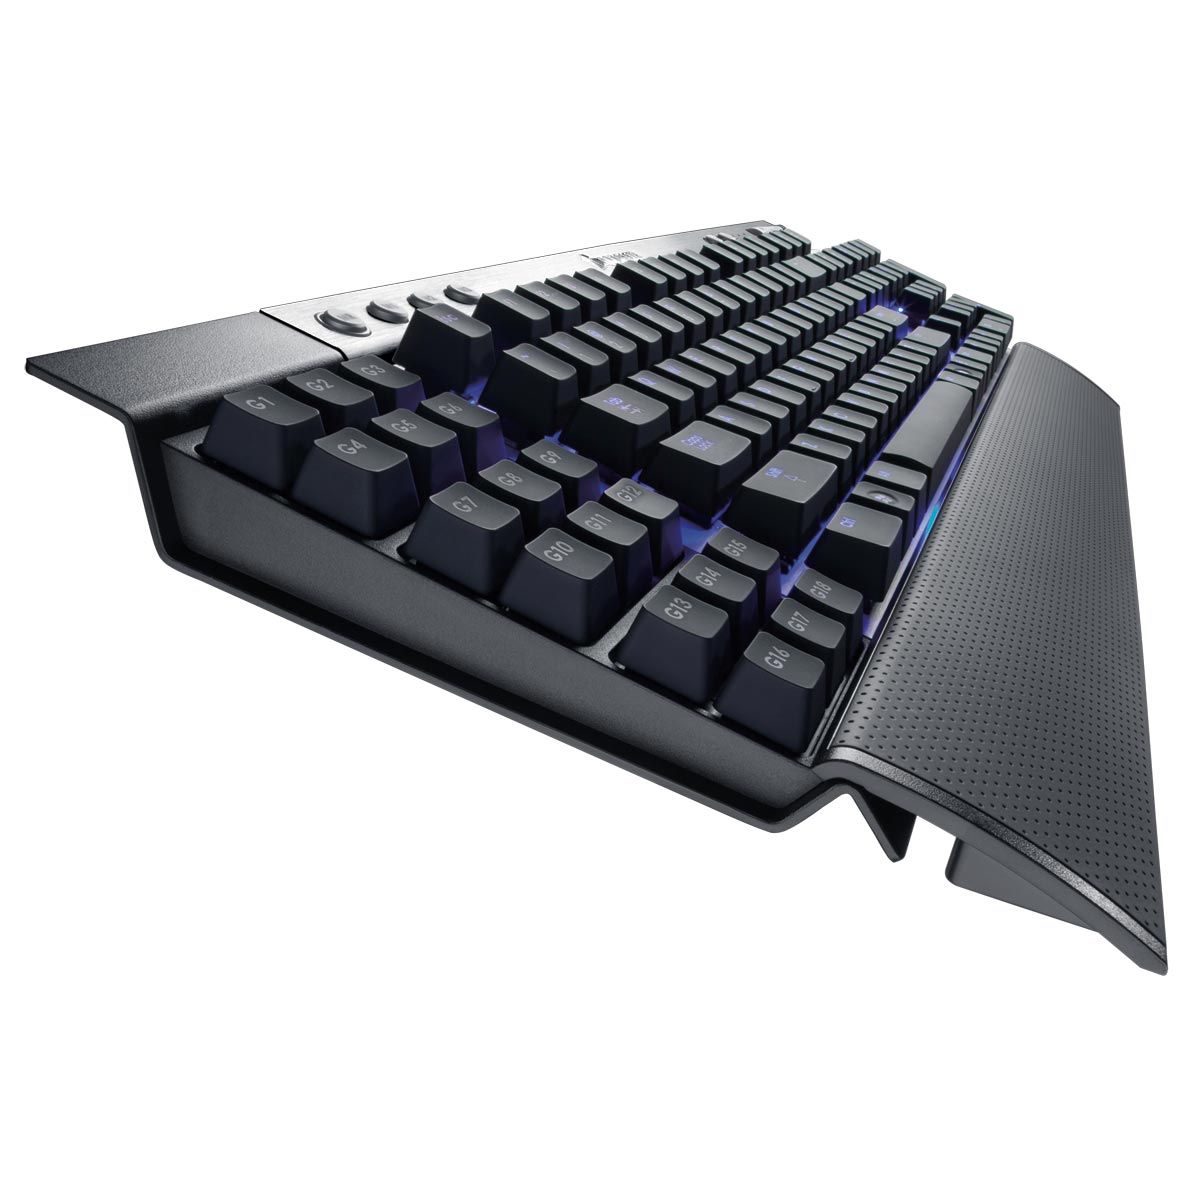 corsair vengeance k90 performance qwerty clavier pc corsair sur ldlc. Black Bedroom Furniture Sets. Home Design Ideas